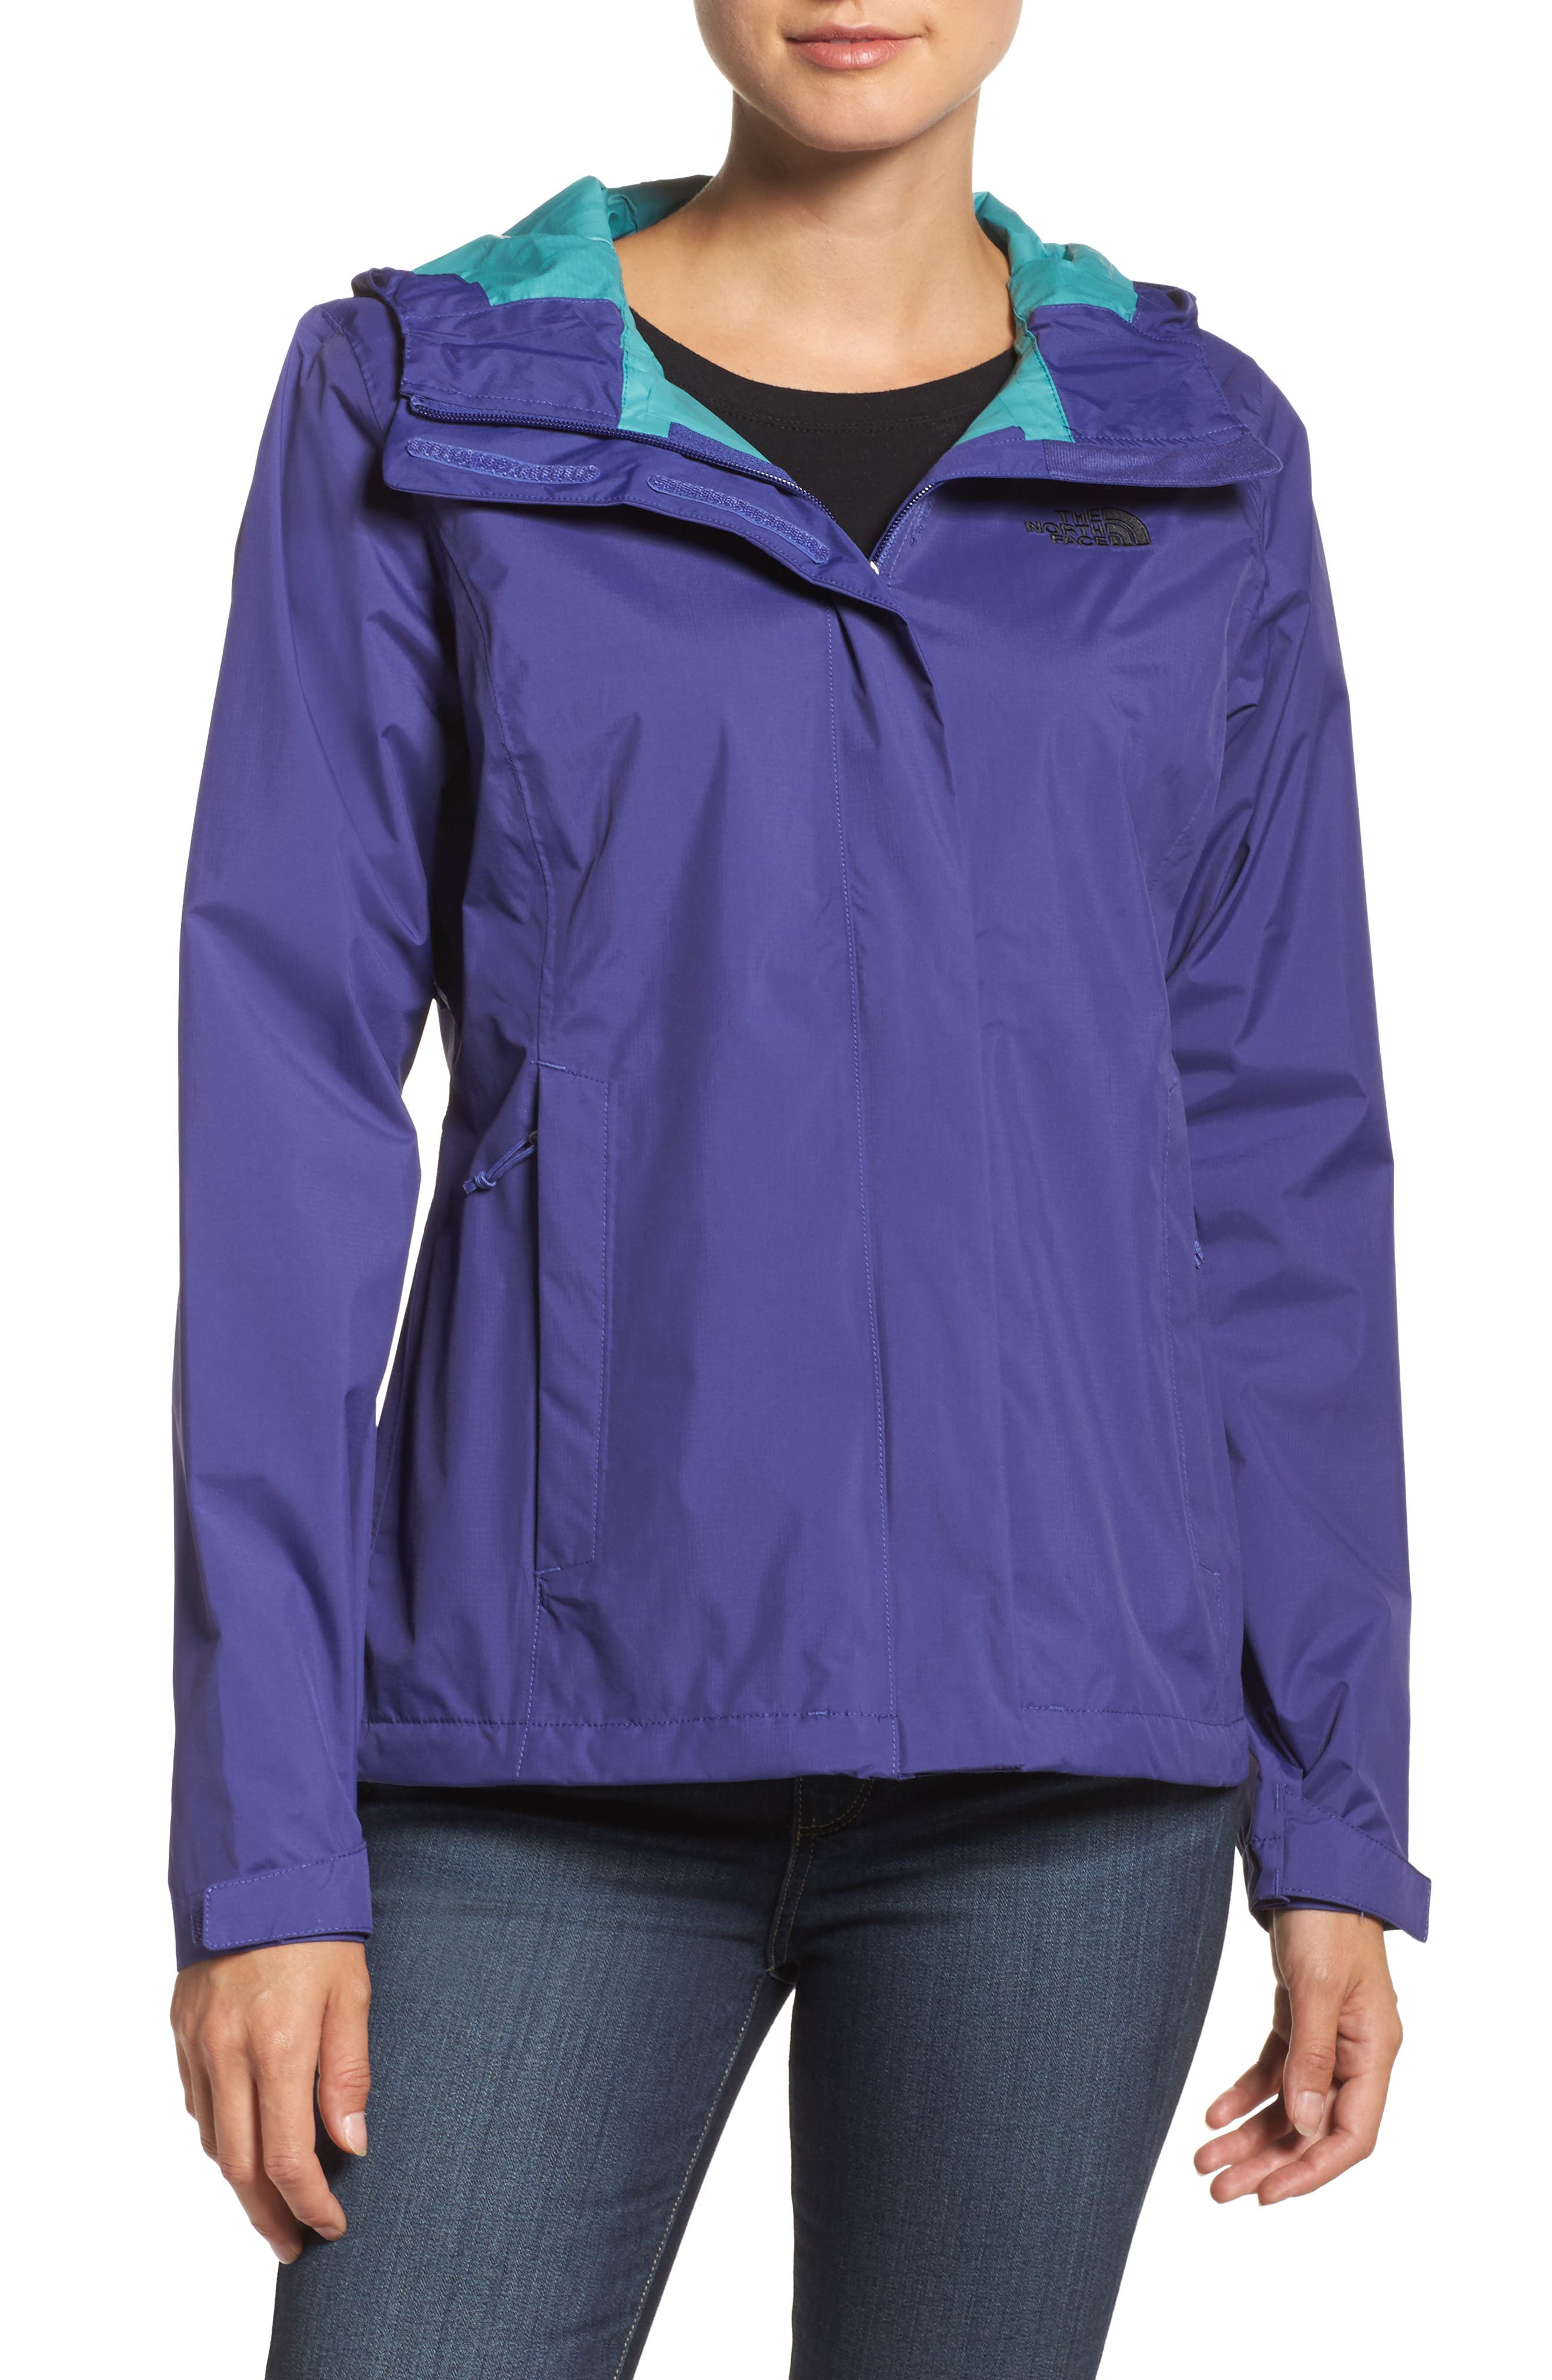 Alternate Image 1 Selected - The North Face Venture 2 Waterproof Jacket